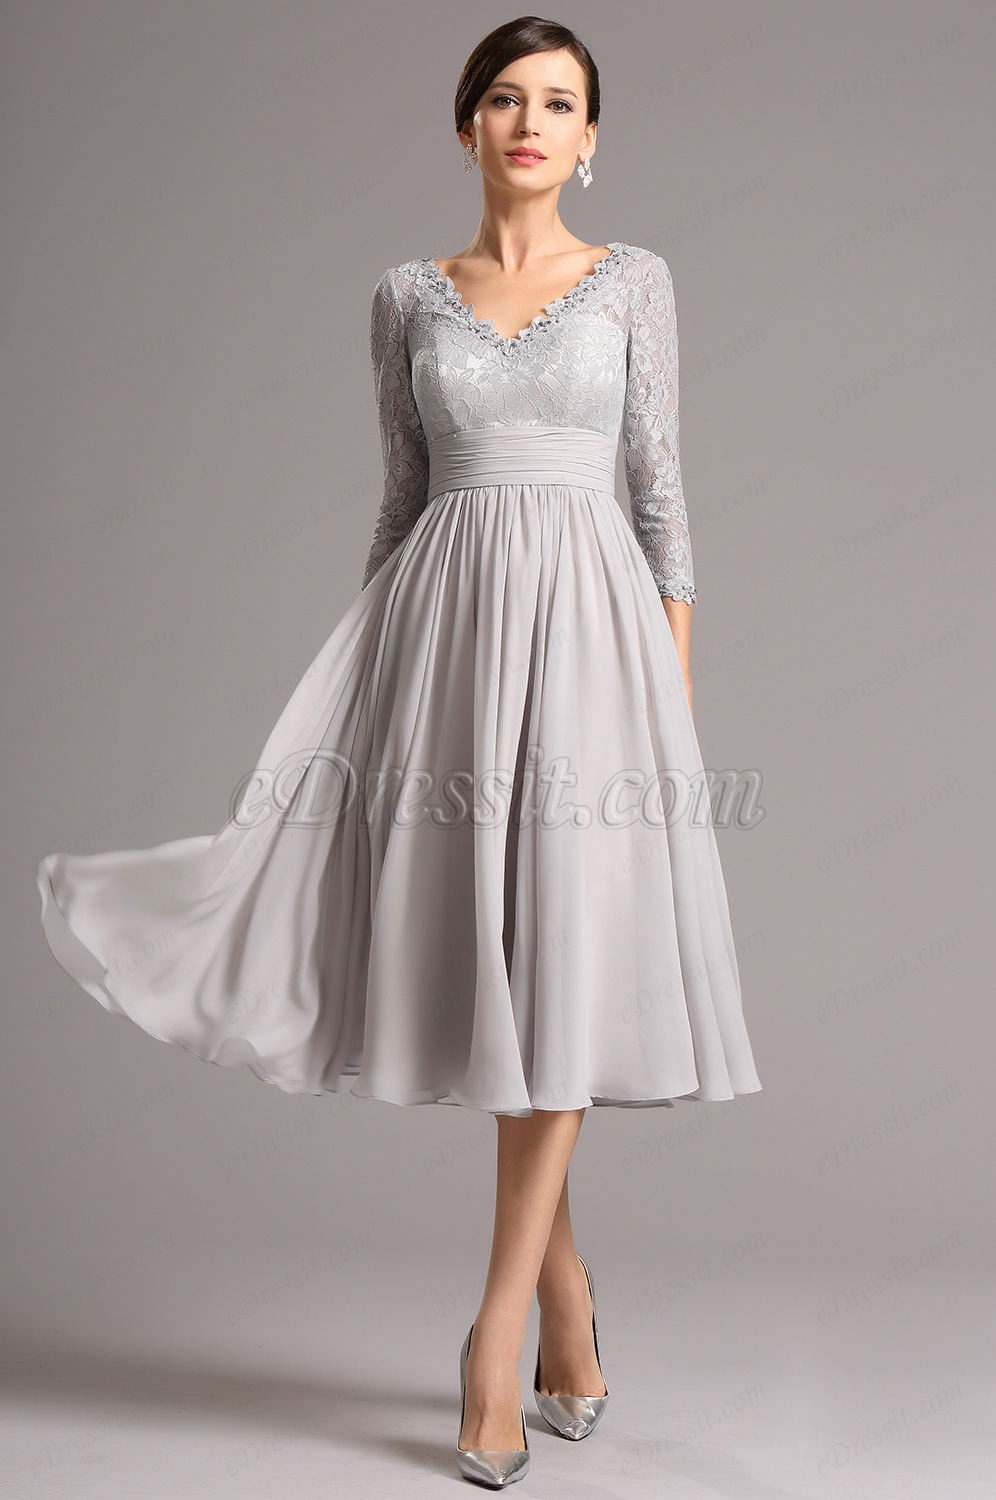 Long Lace Sleeves Plunging Neck Grey Tea Length Dress (26160108)